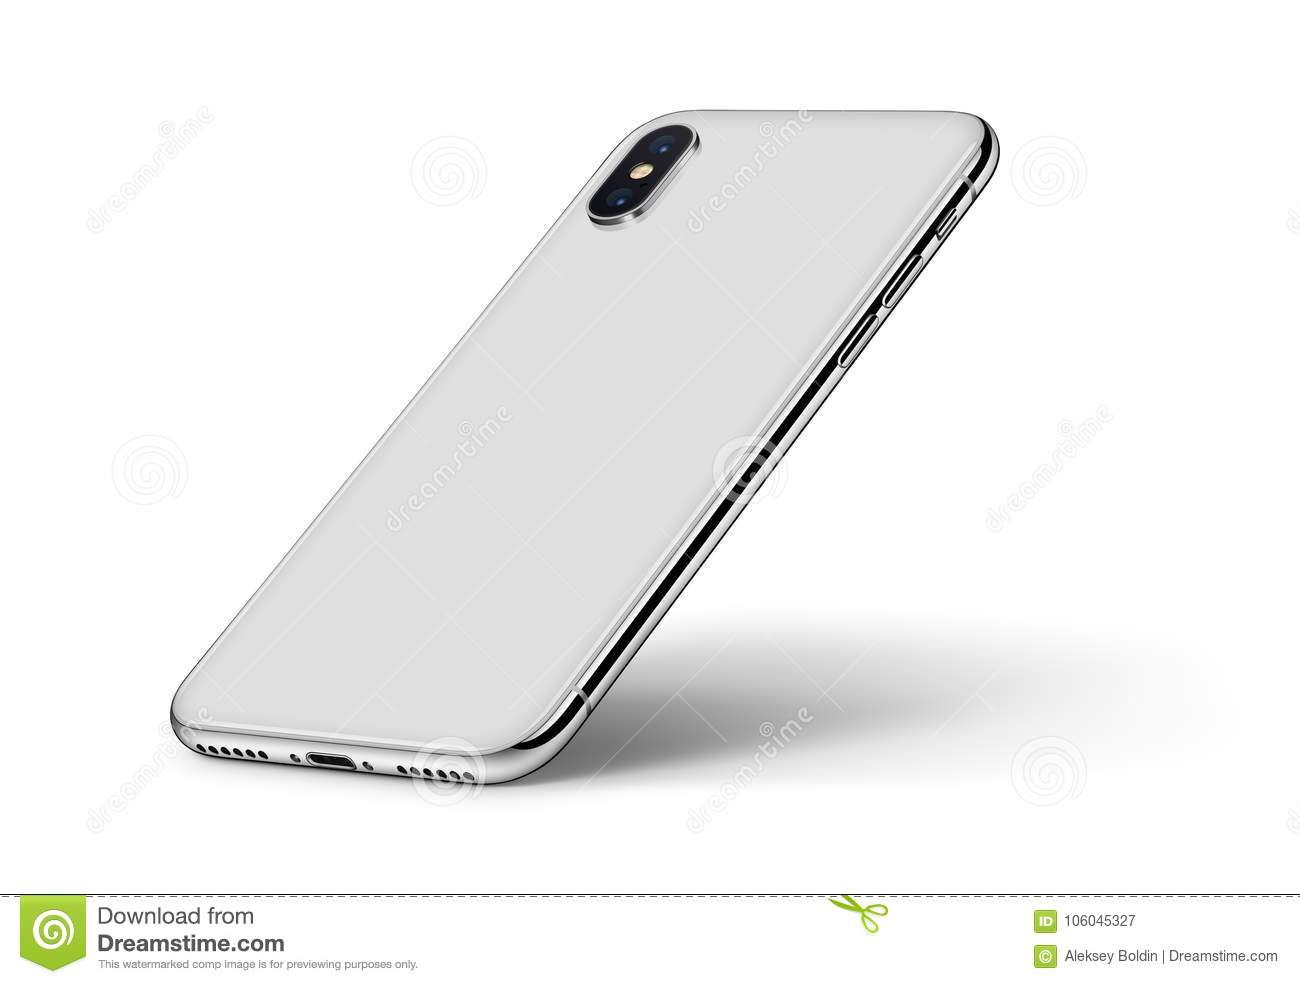 Perspective smartphone similar to iPhone X back side with shadow CW rotated on white background